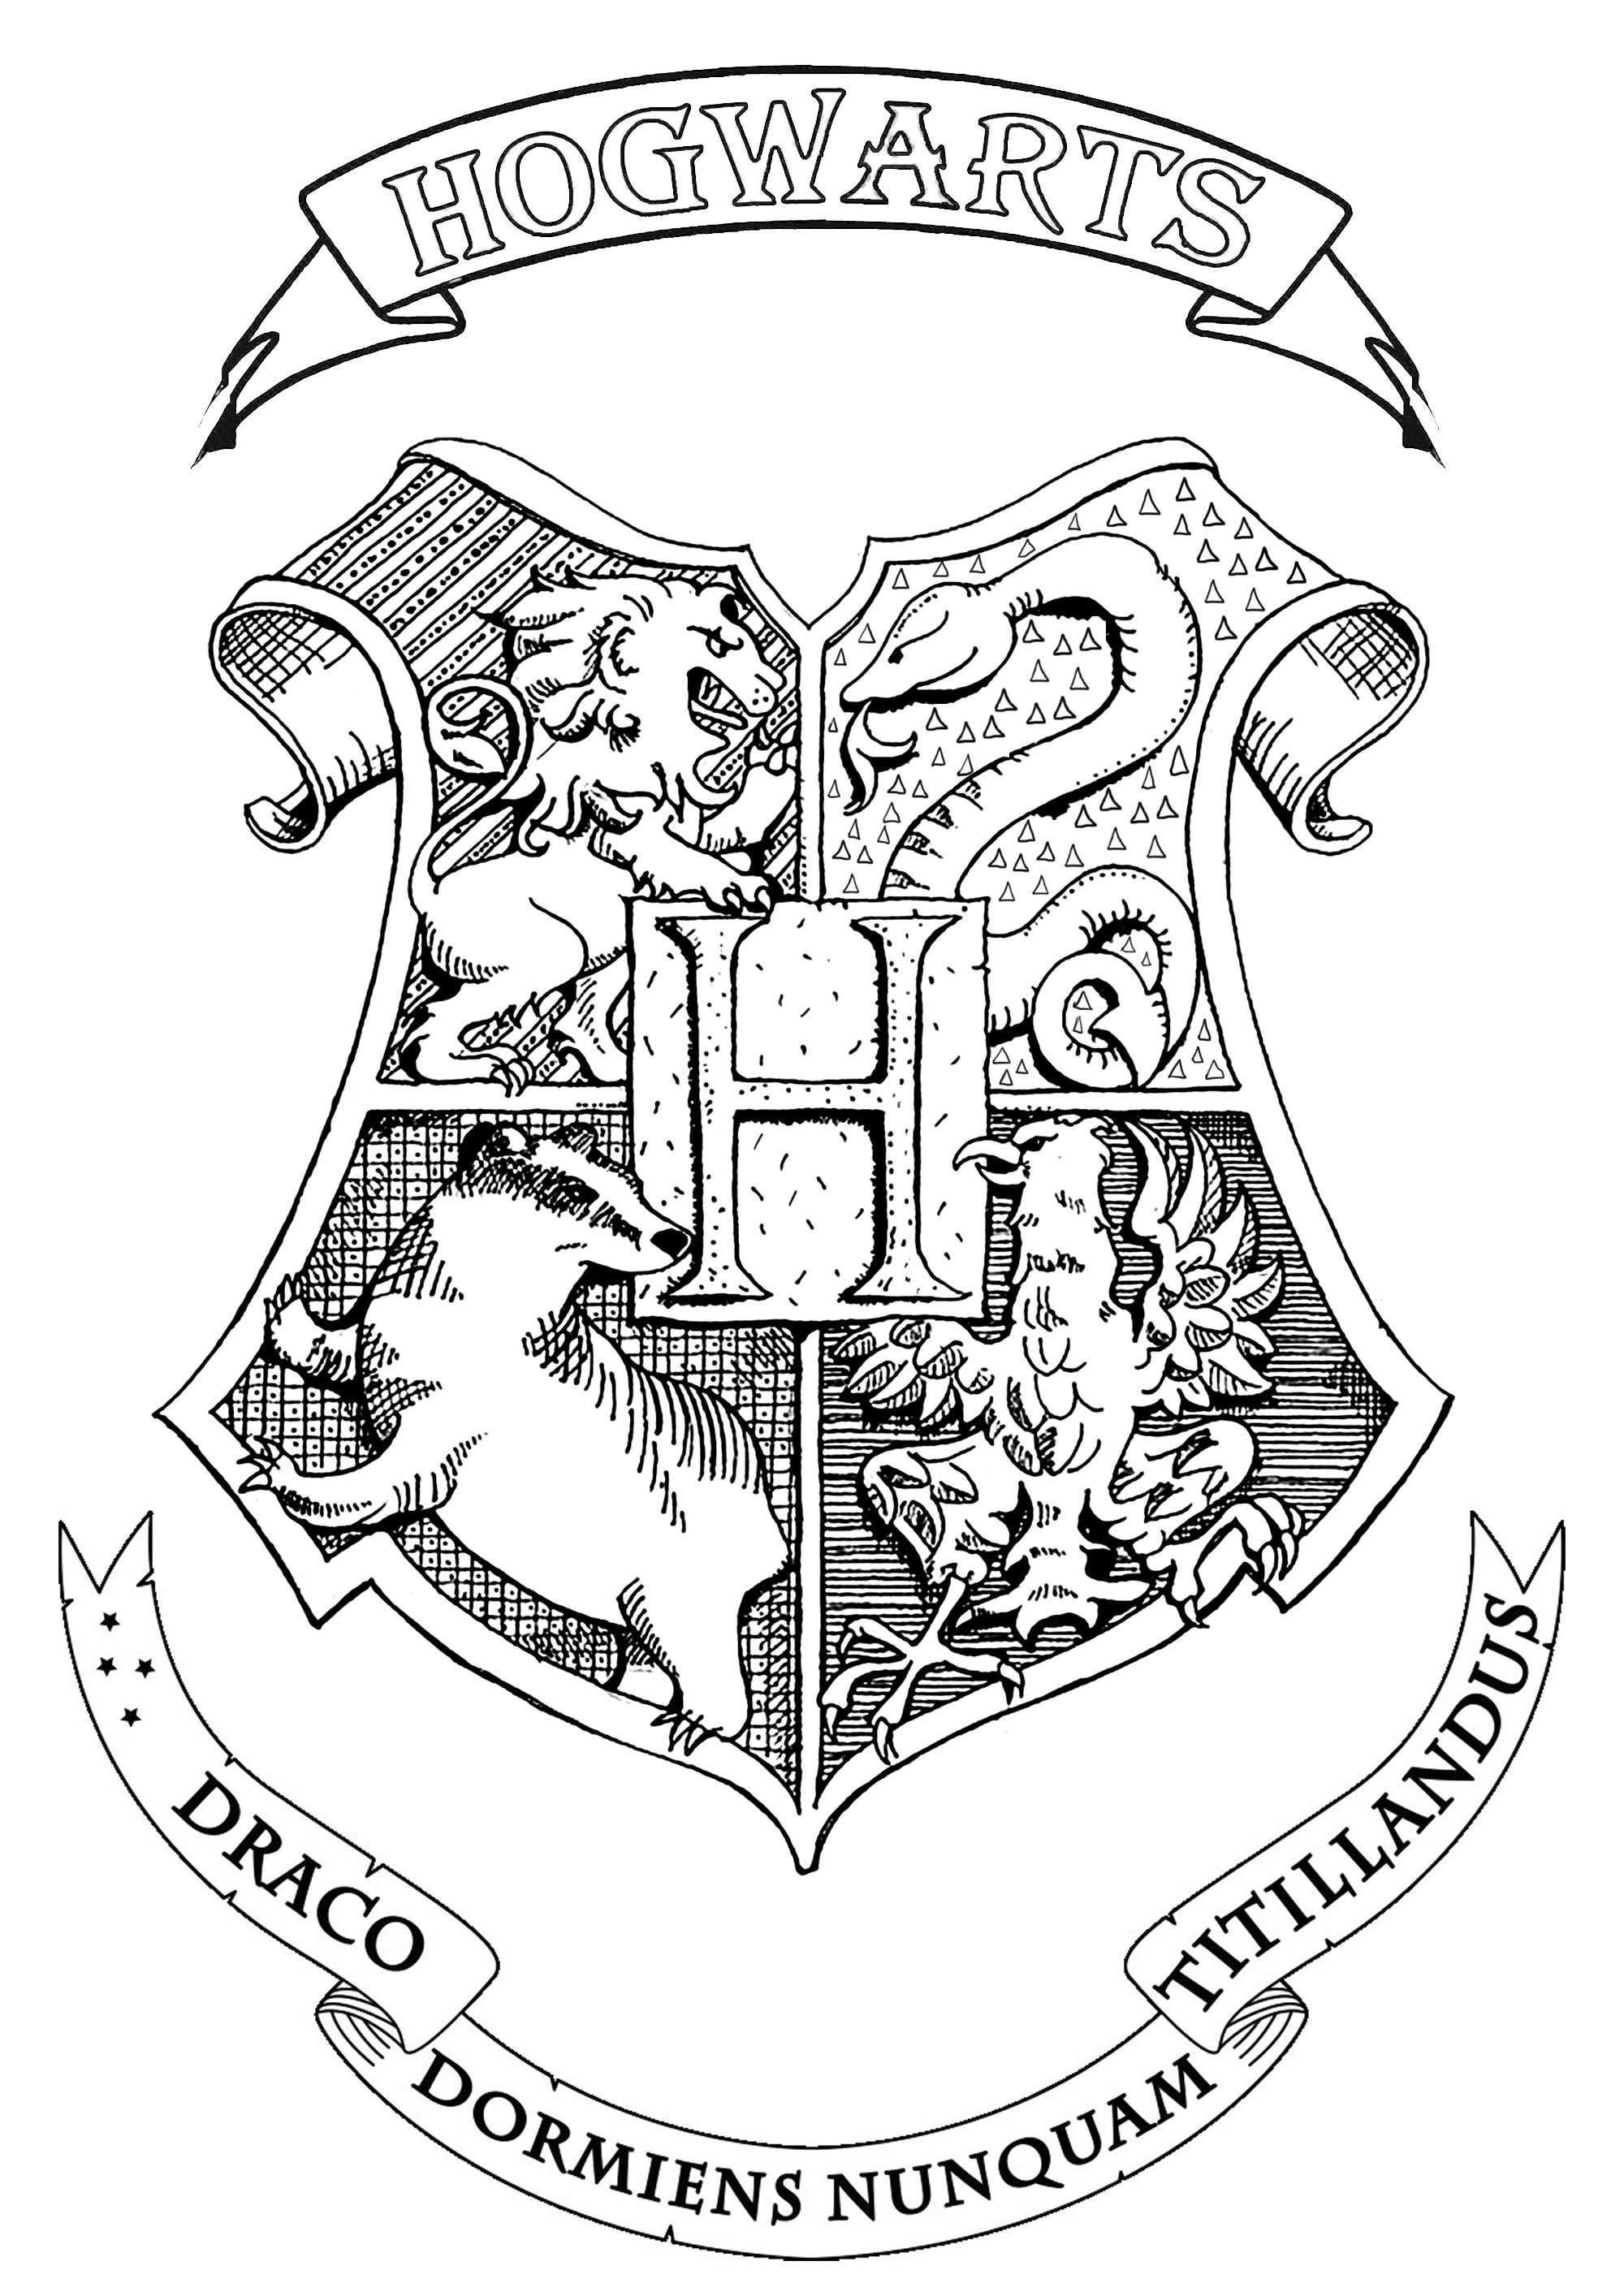 Harry Potter Hogwarts Crest Books And Comics Coloring Pages For